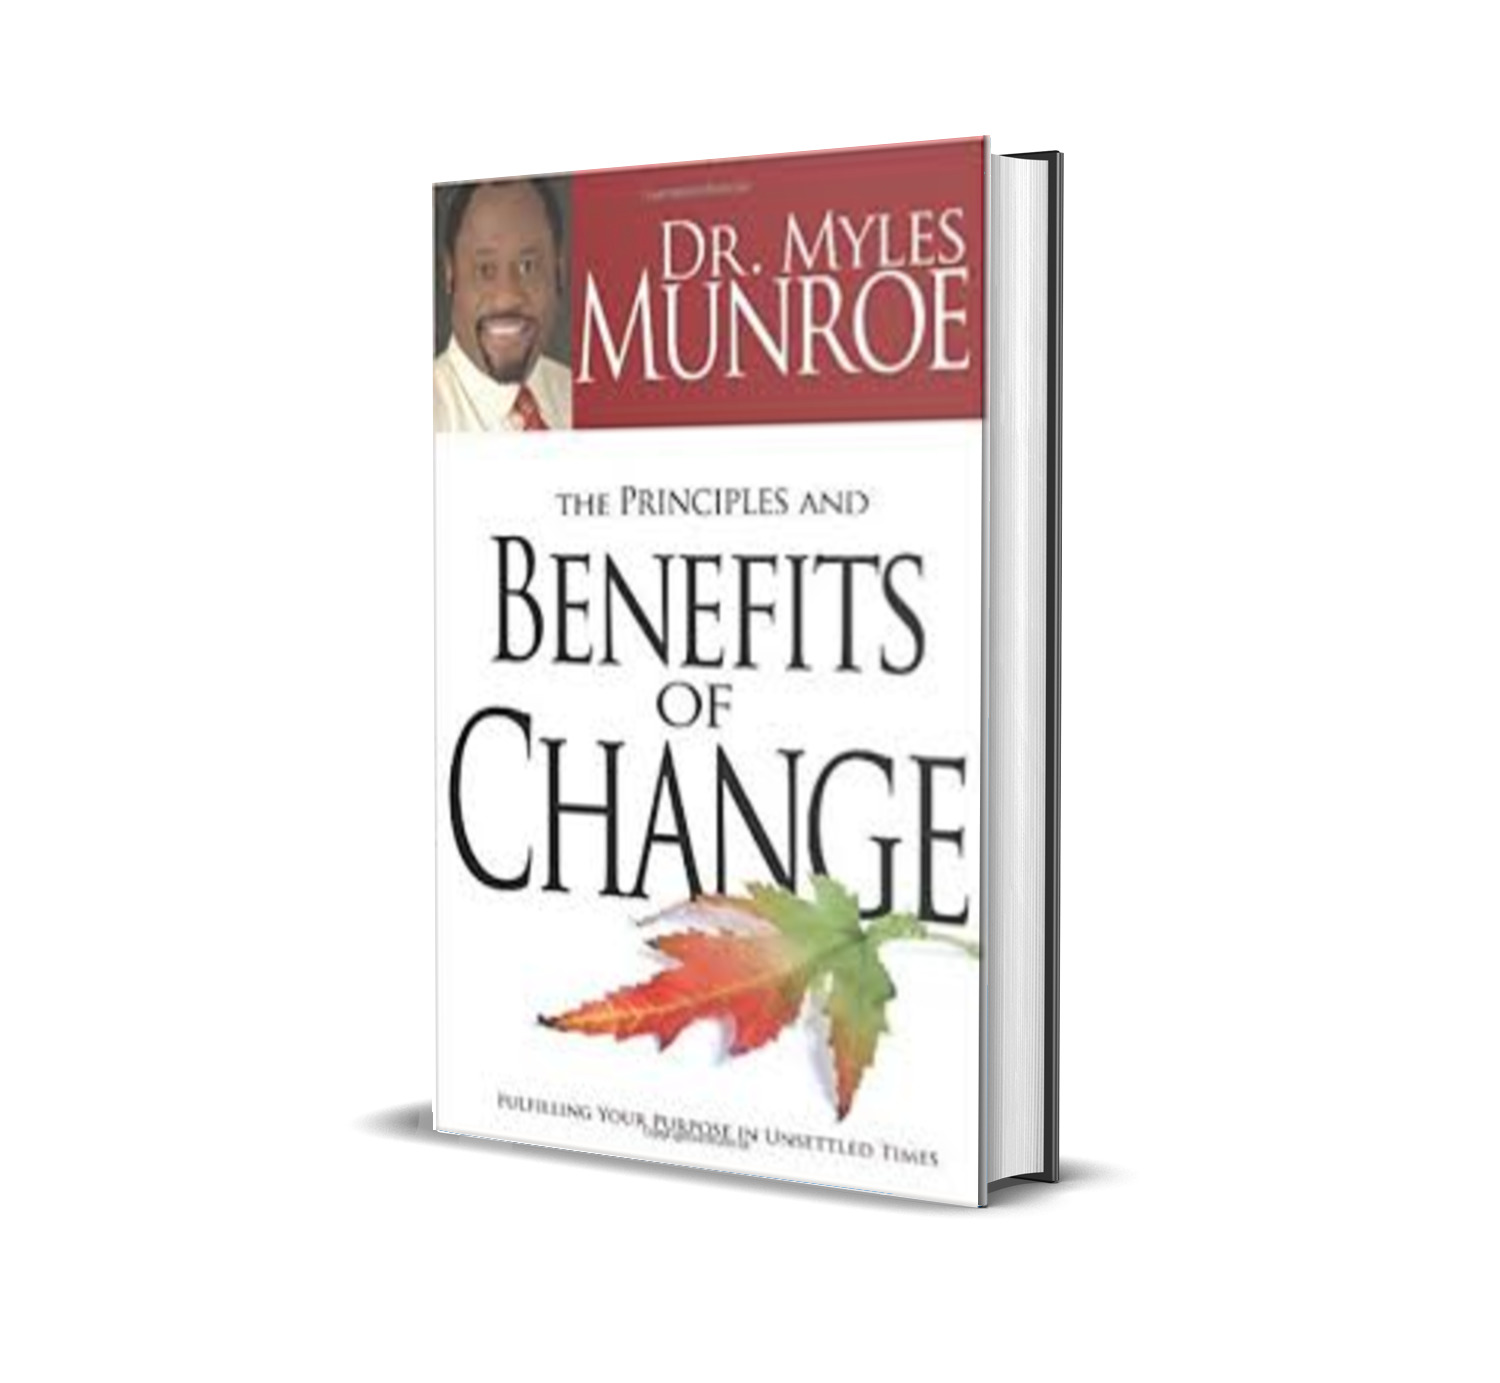 THE PRINCIPLES AND BENEFITS OF CHANGE - MYLES MUNROE